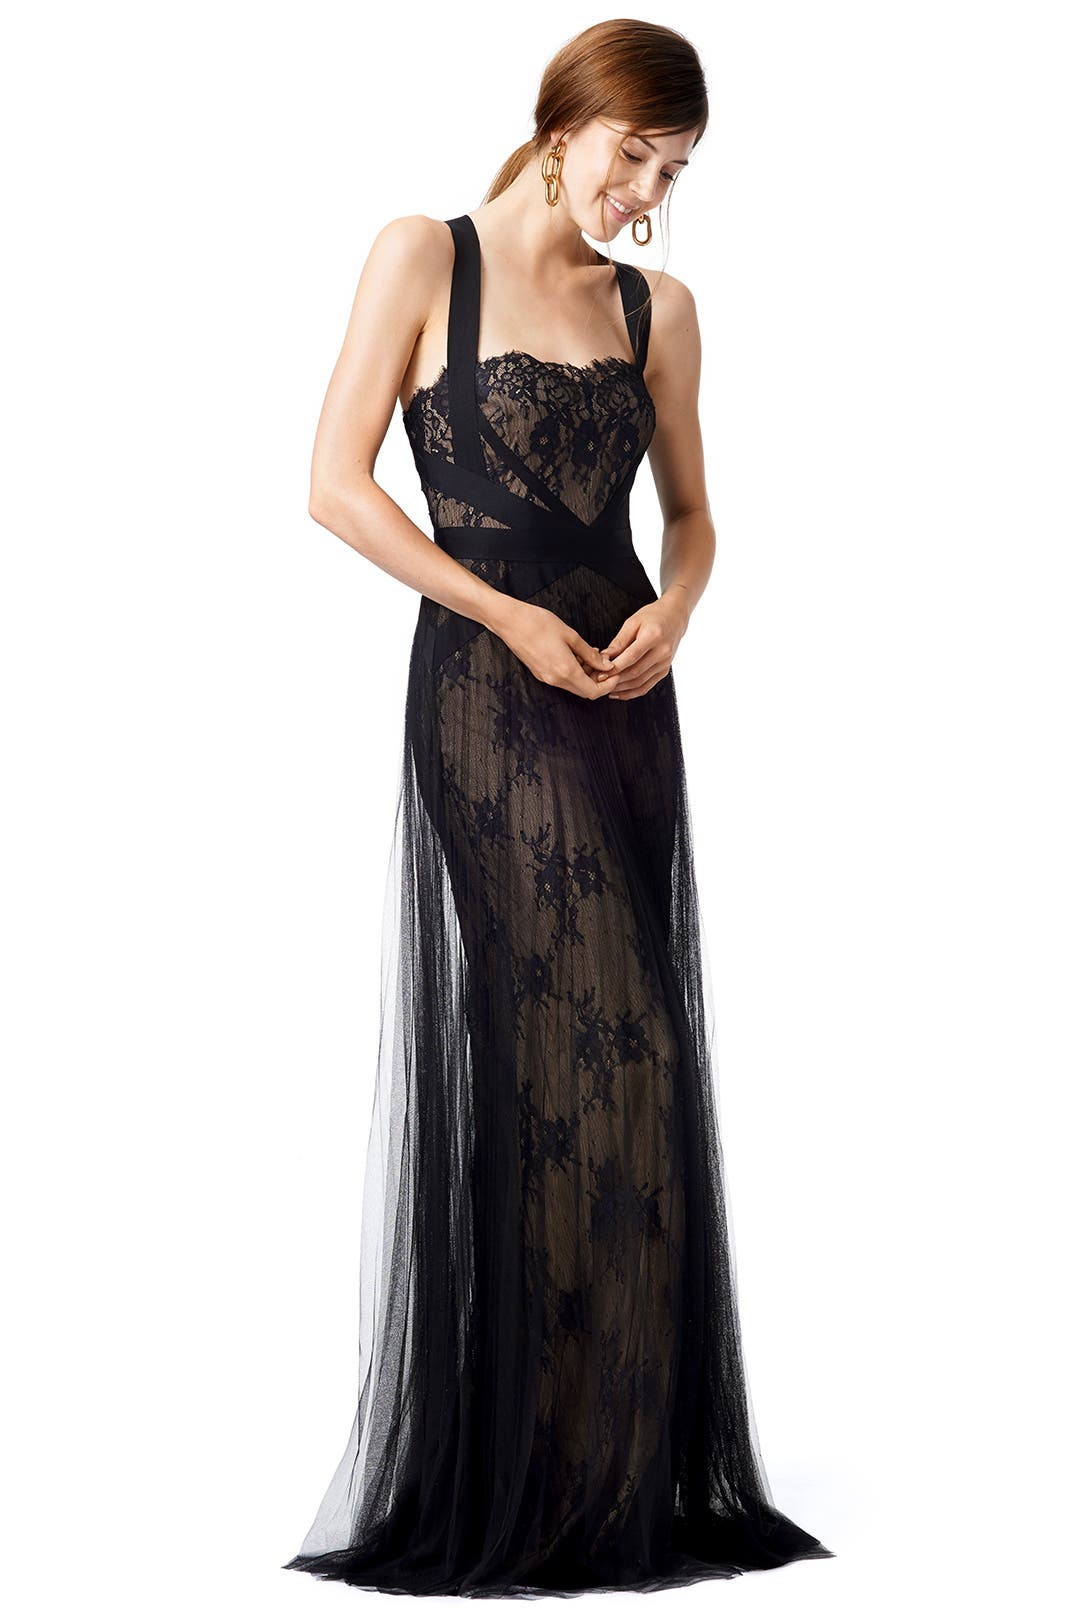 Over Again Gown by Marchesa Notte for $259 | Rent the Runway